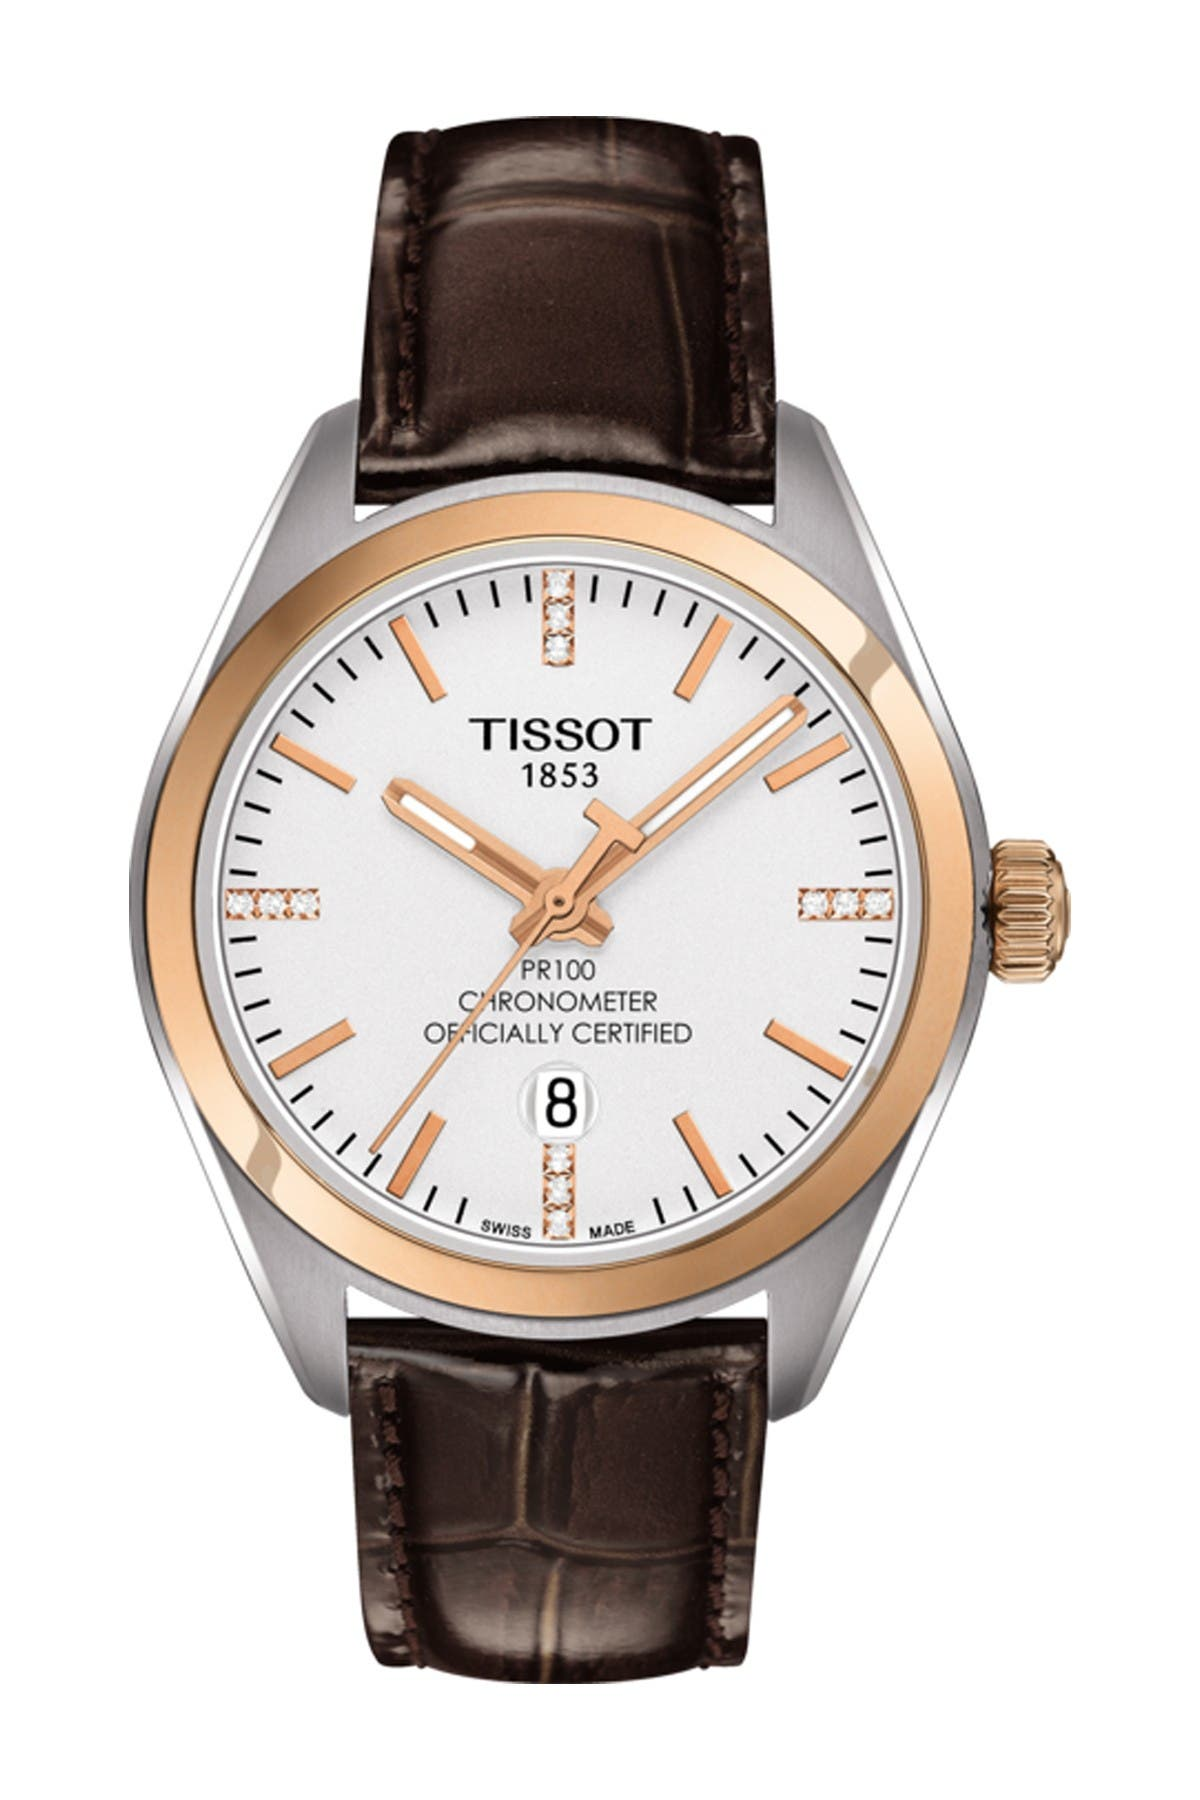 Image of Tissot Women's PR 100 Lady COSC Diamond Accented Leather Watch, 33mm - 0.0456 ctw